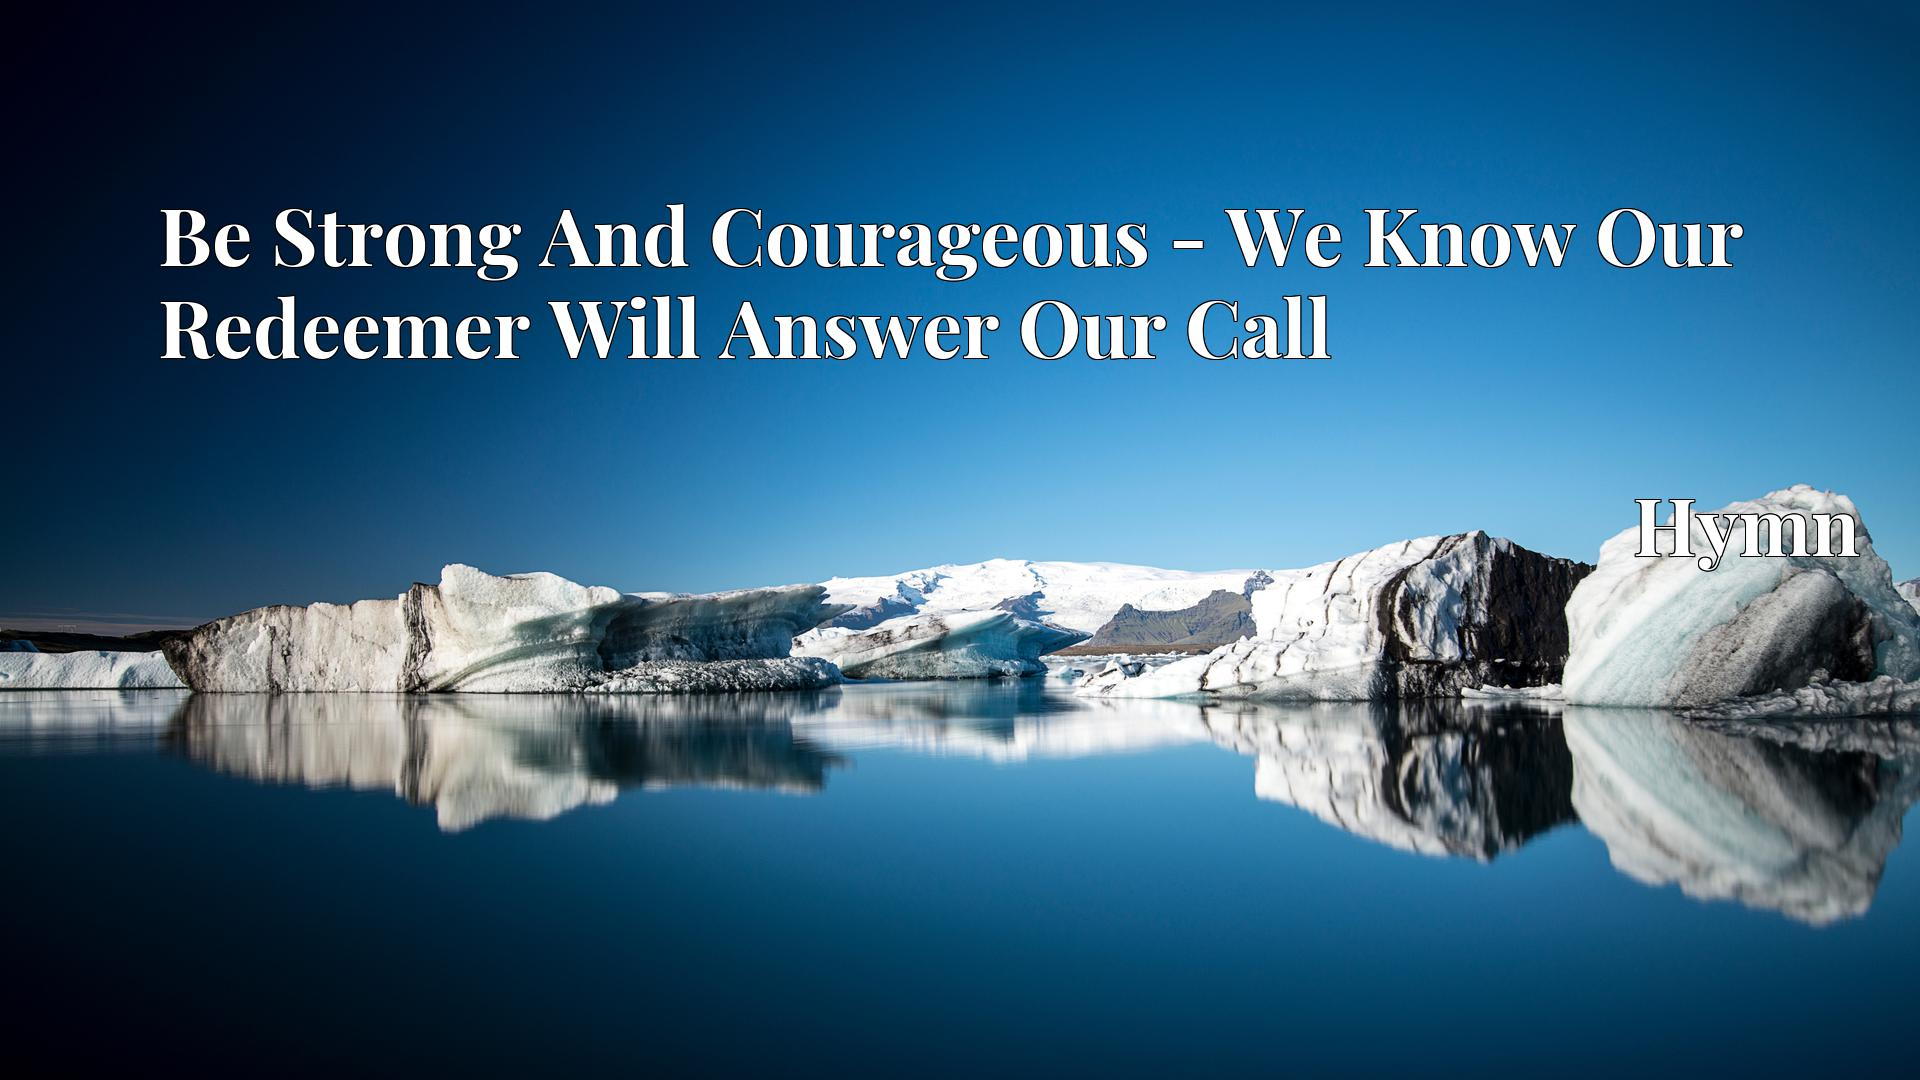 Be Strong And Courageous - We Know Our Redeemer Will Answer Our Call Hymn